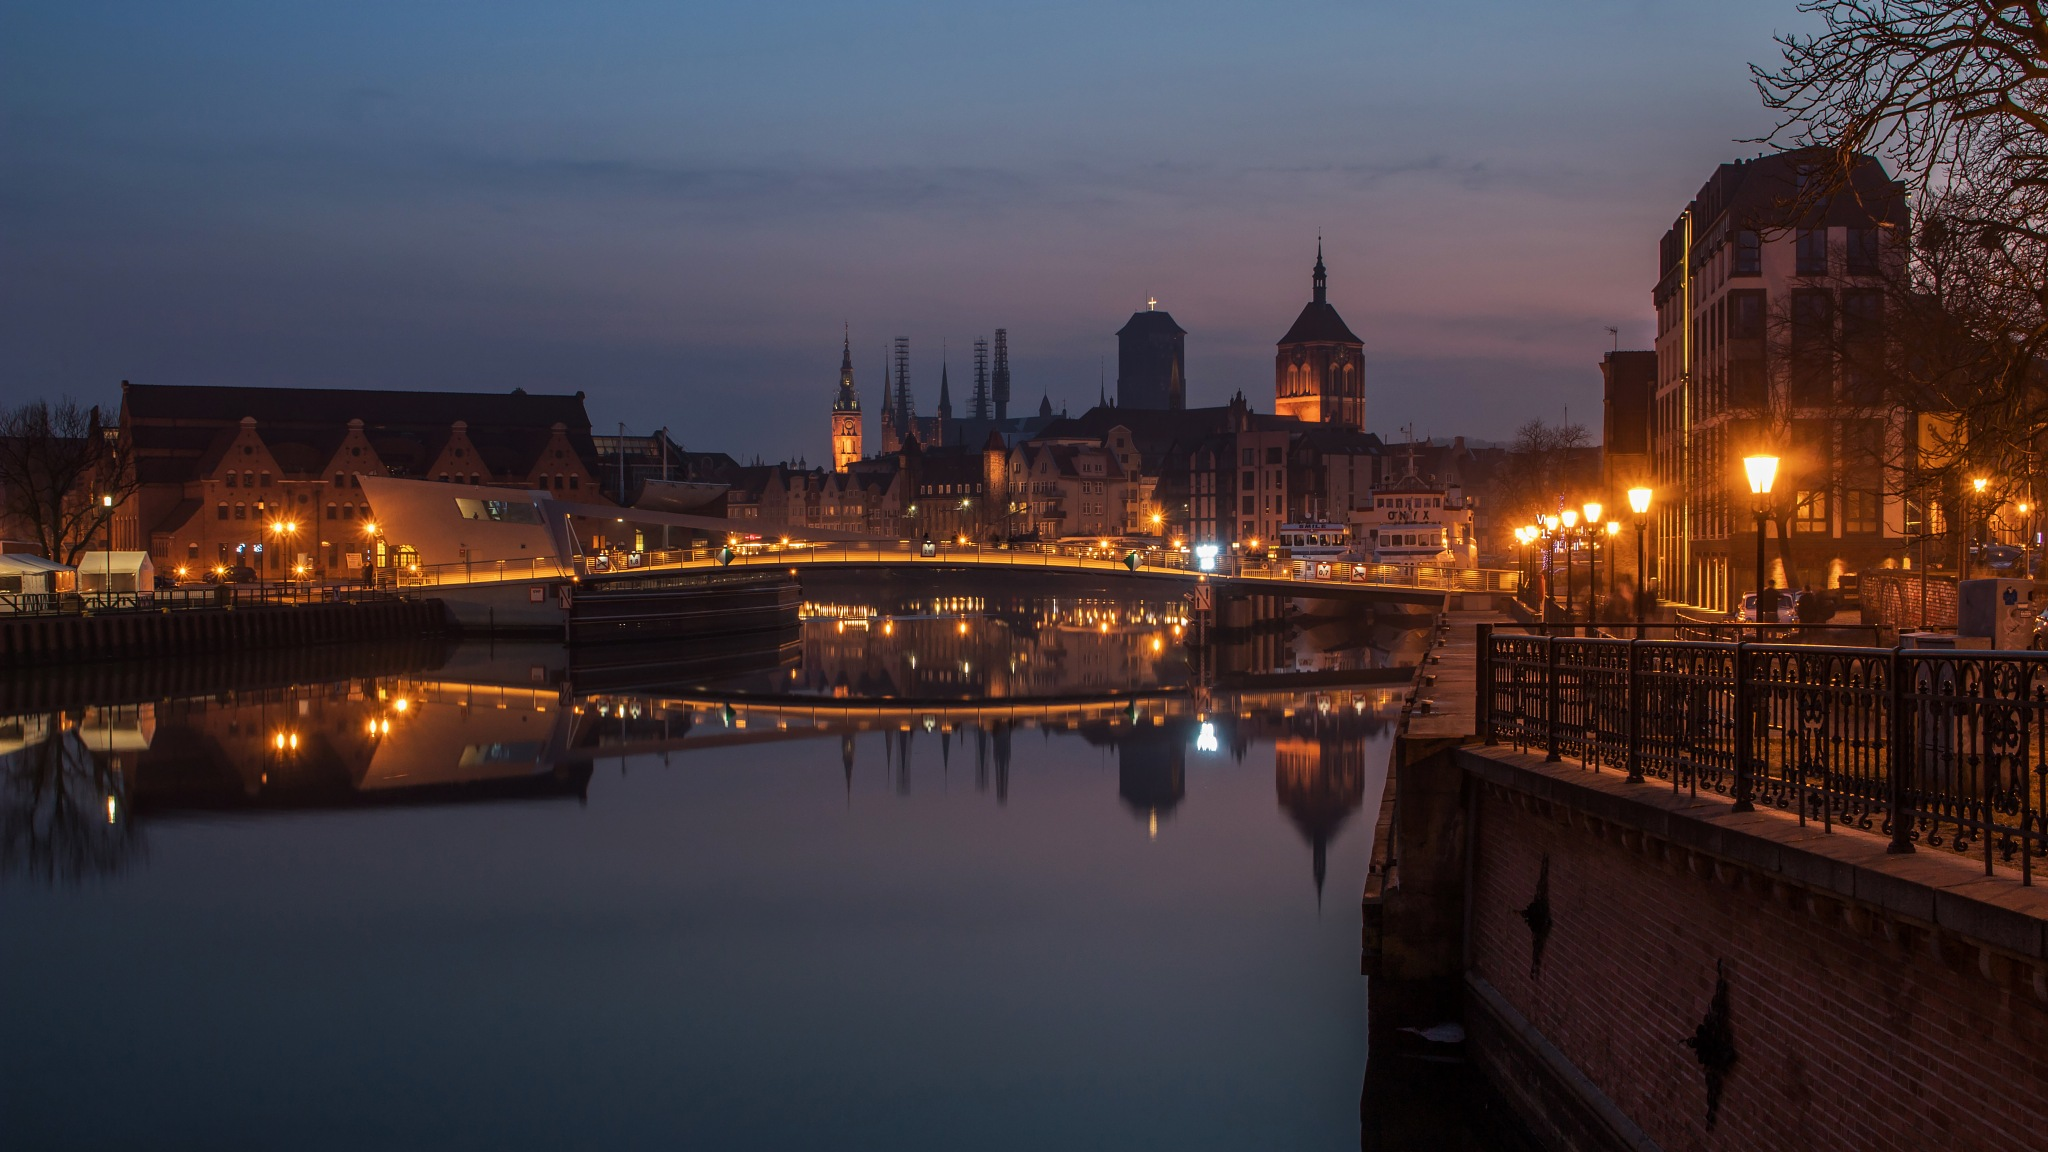 An Evening in Gdansk, Poland by Paweł